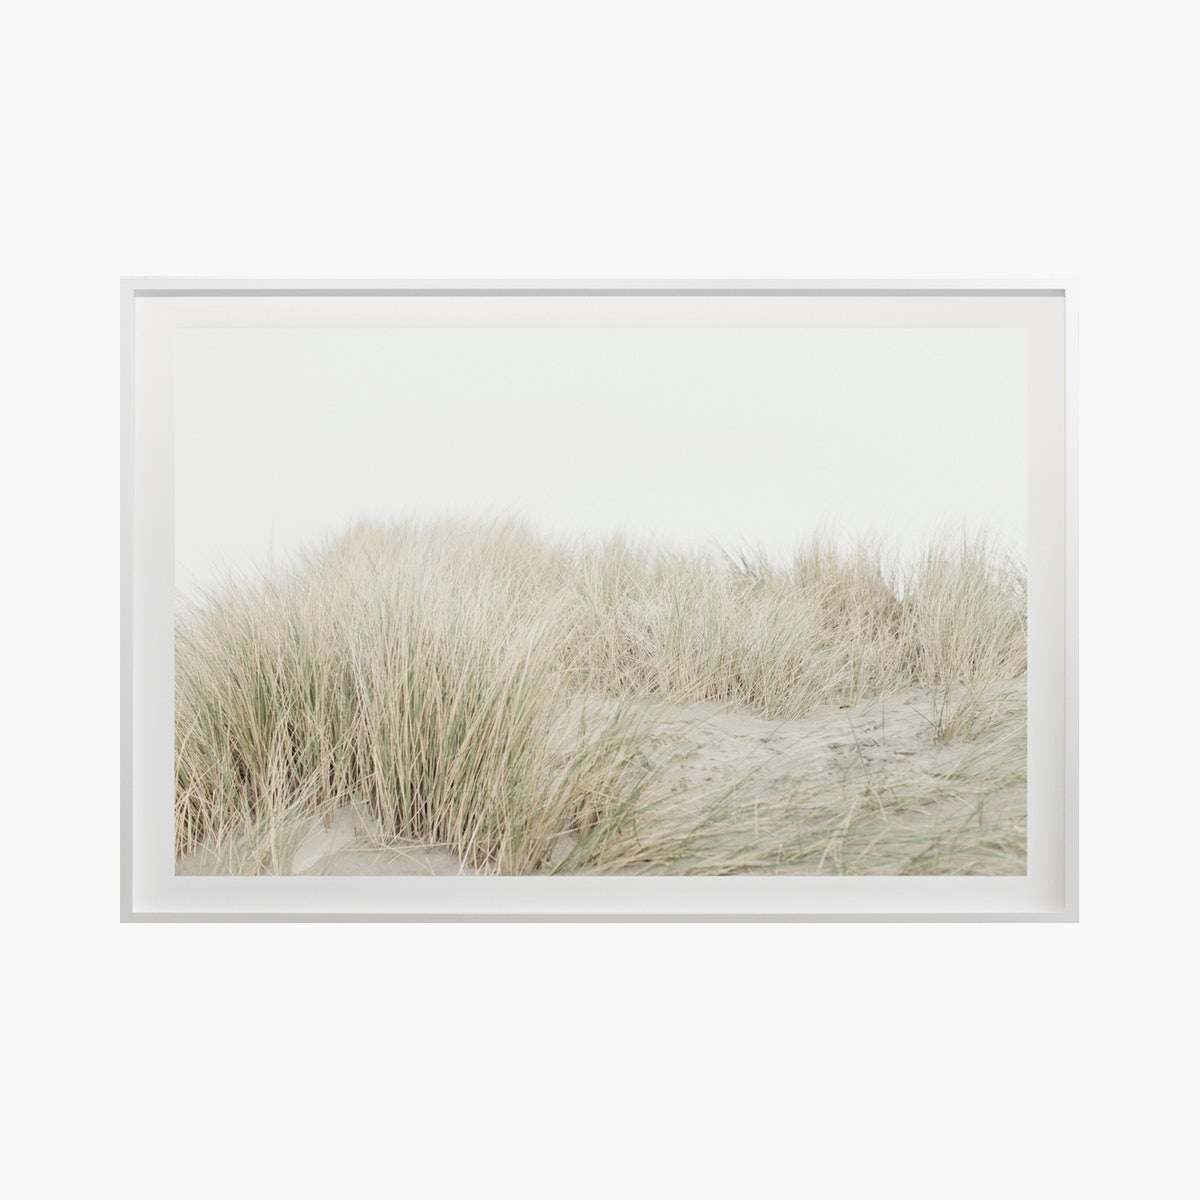 """Dunes No. 7100"" by Cas Friese"